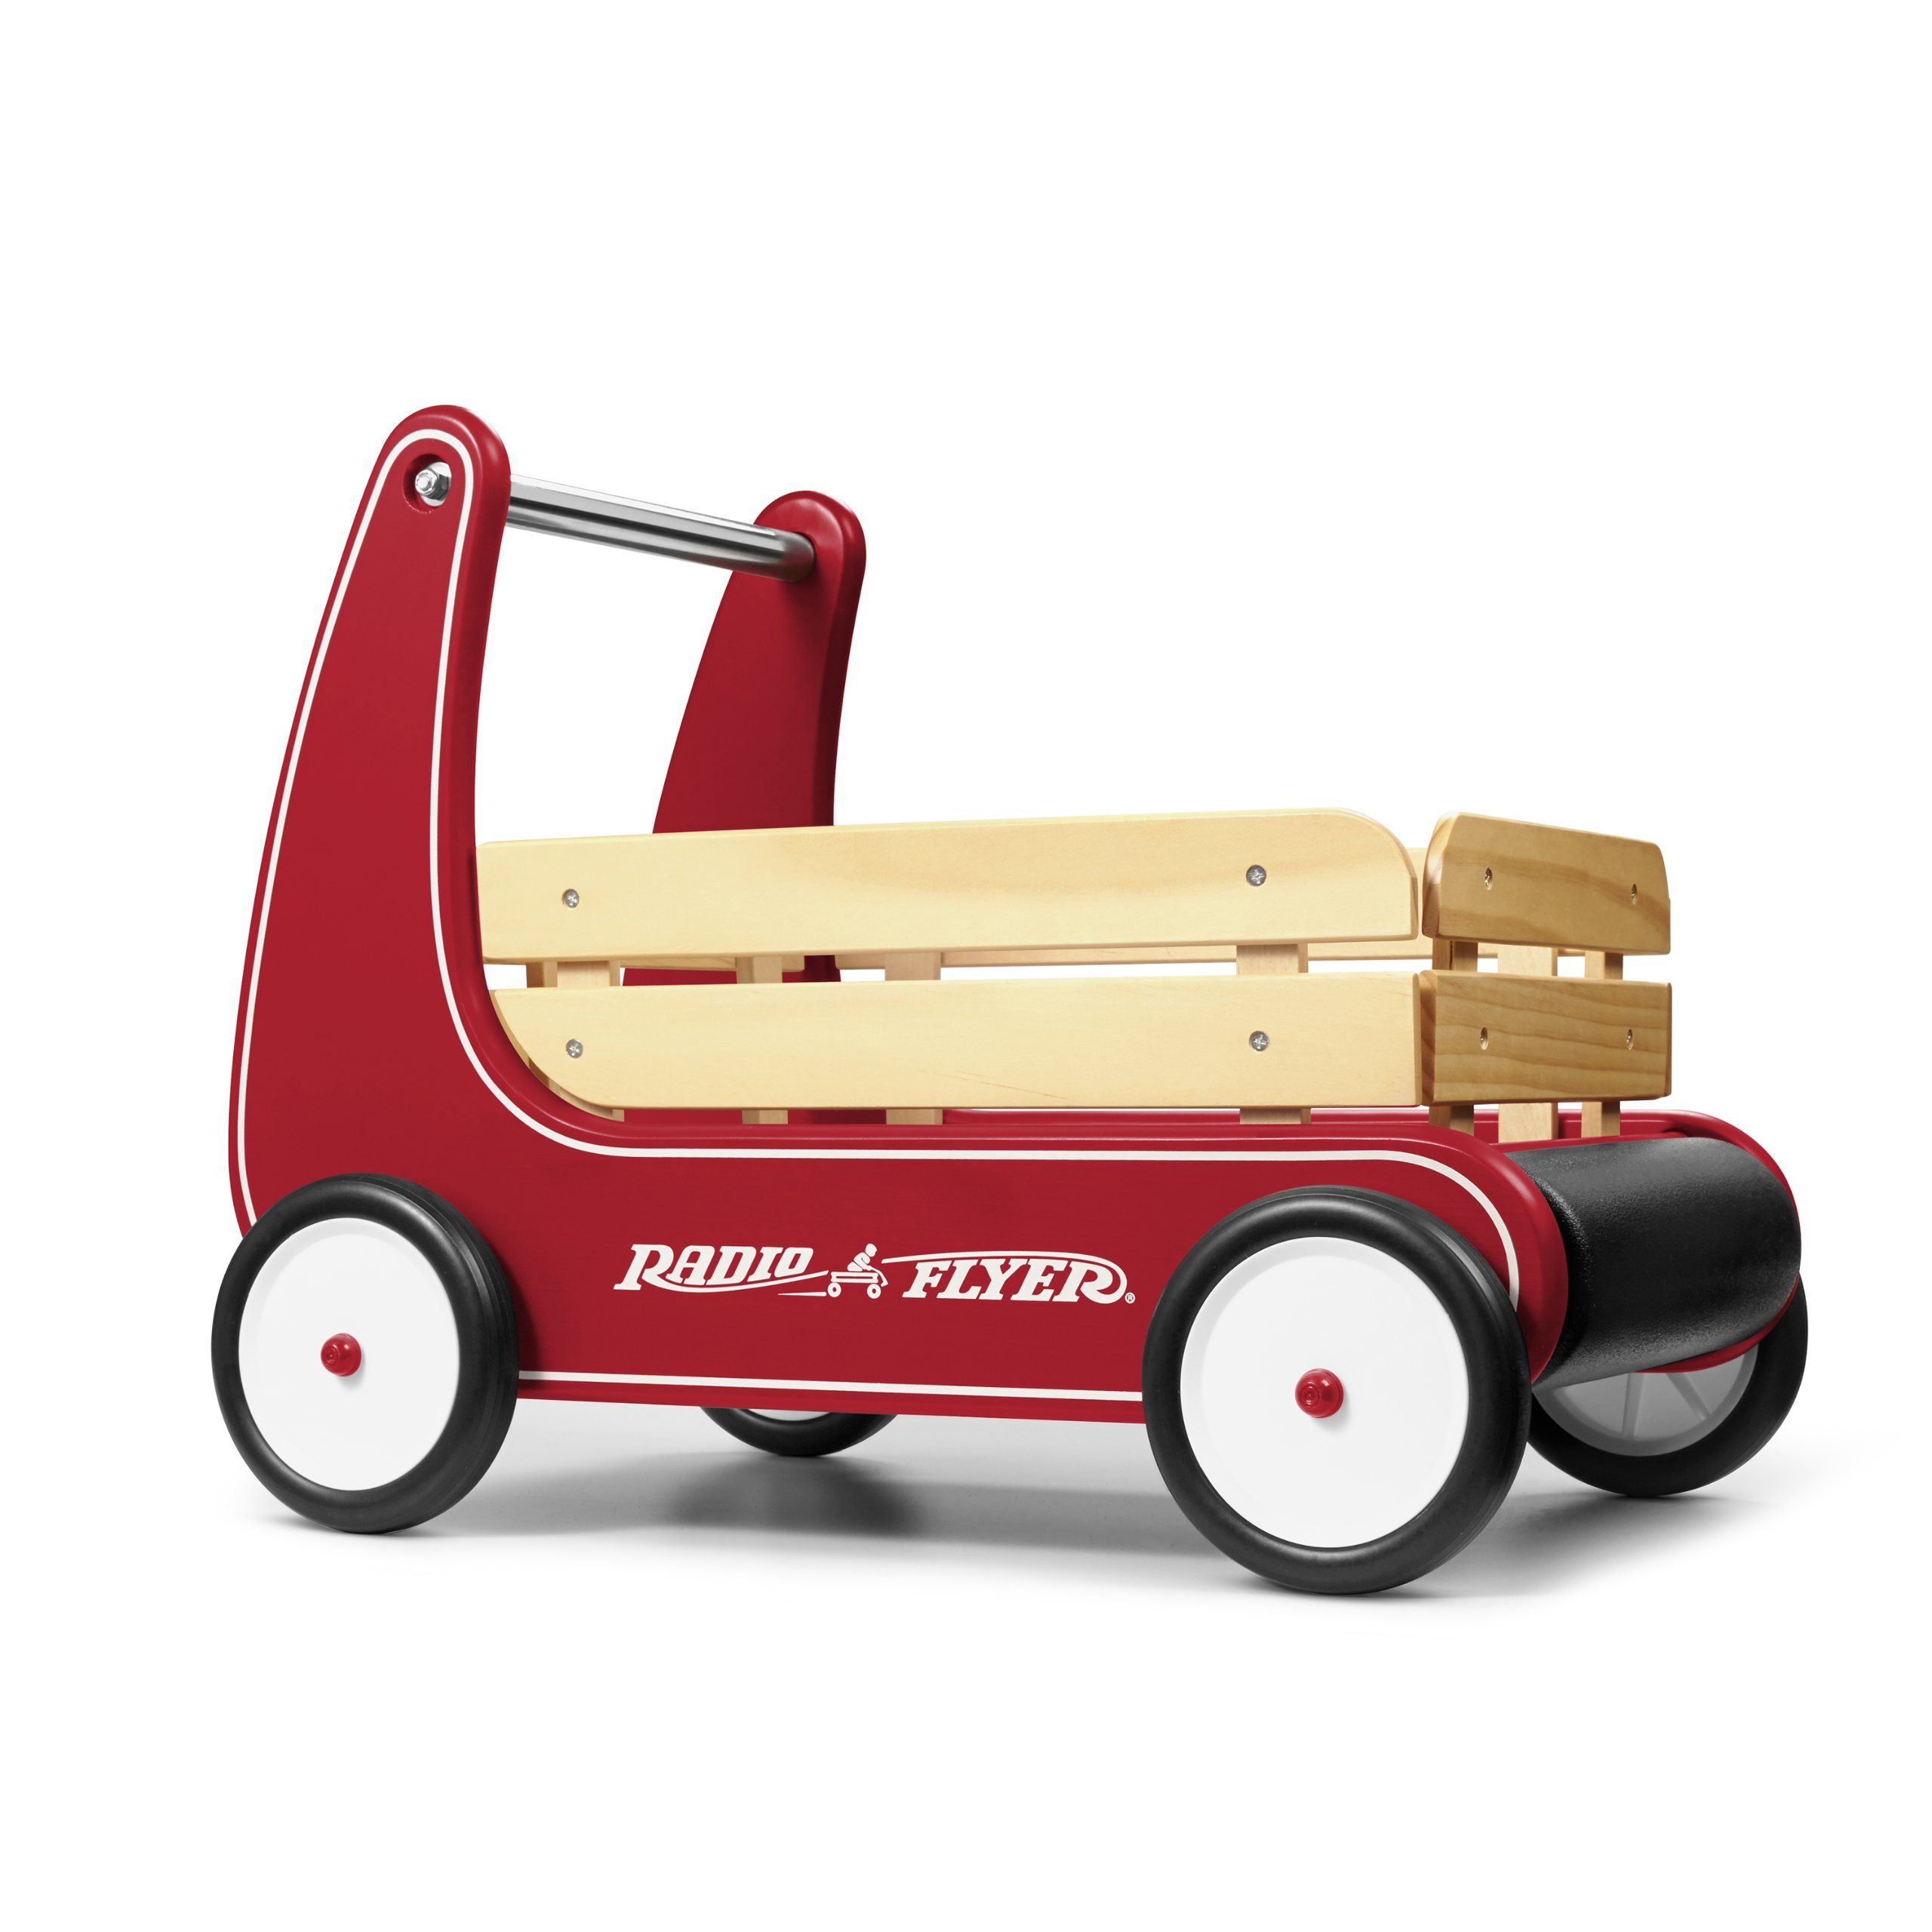 936e35e3e Radio Flyer Classic Walker Wagon. Resist push feature allows ...